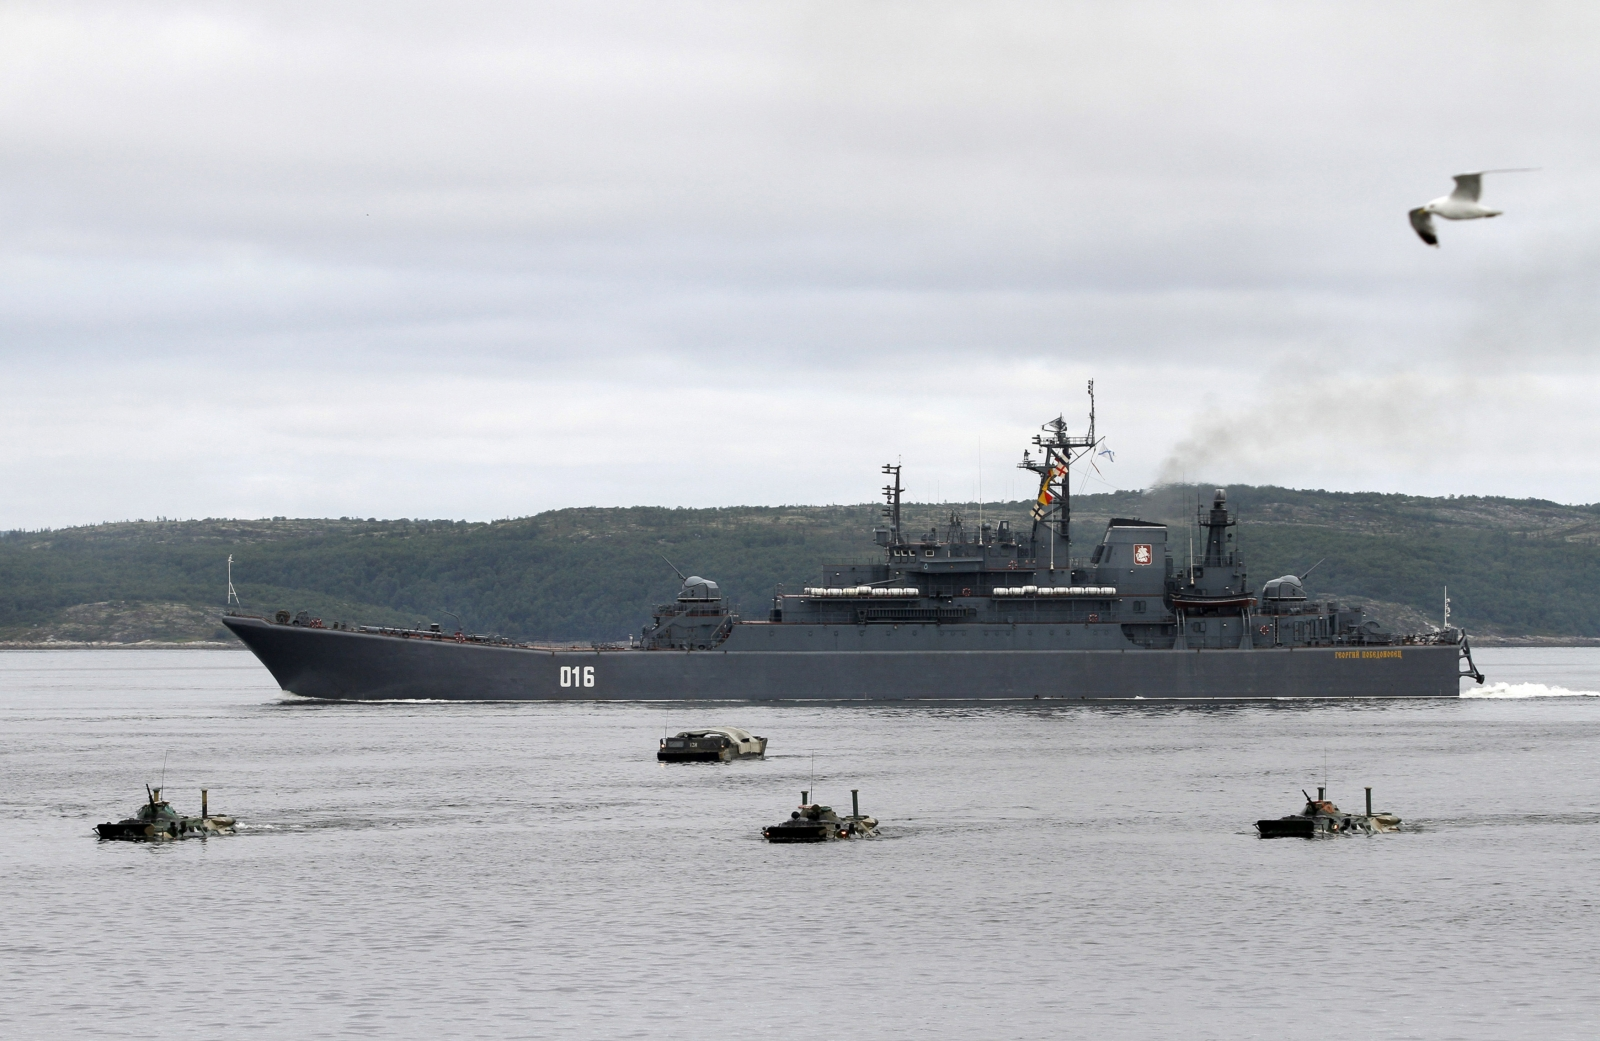 A Russian warship and amphibious military vehicles move during a naval parade rehearsal at the port of Severomorsk in the Barents sea July 29, 2011